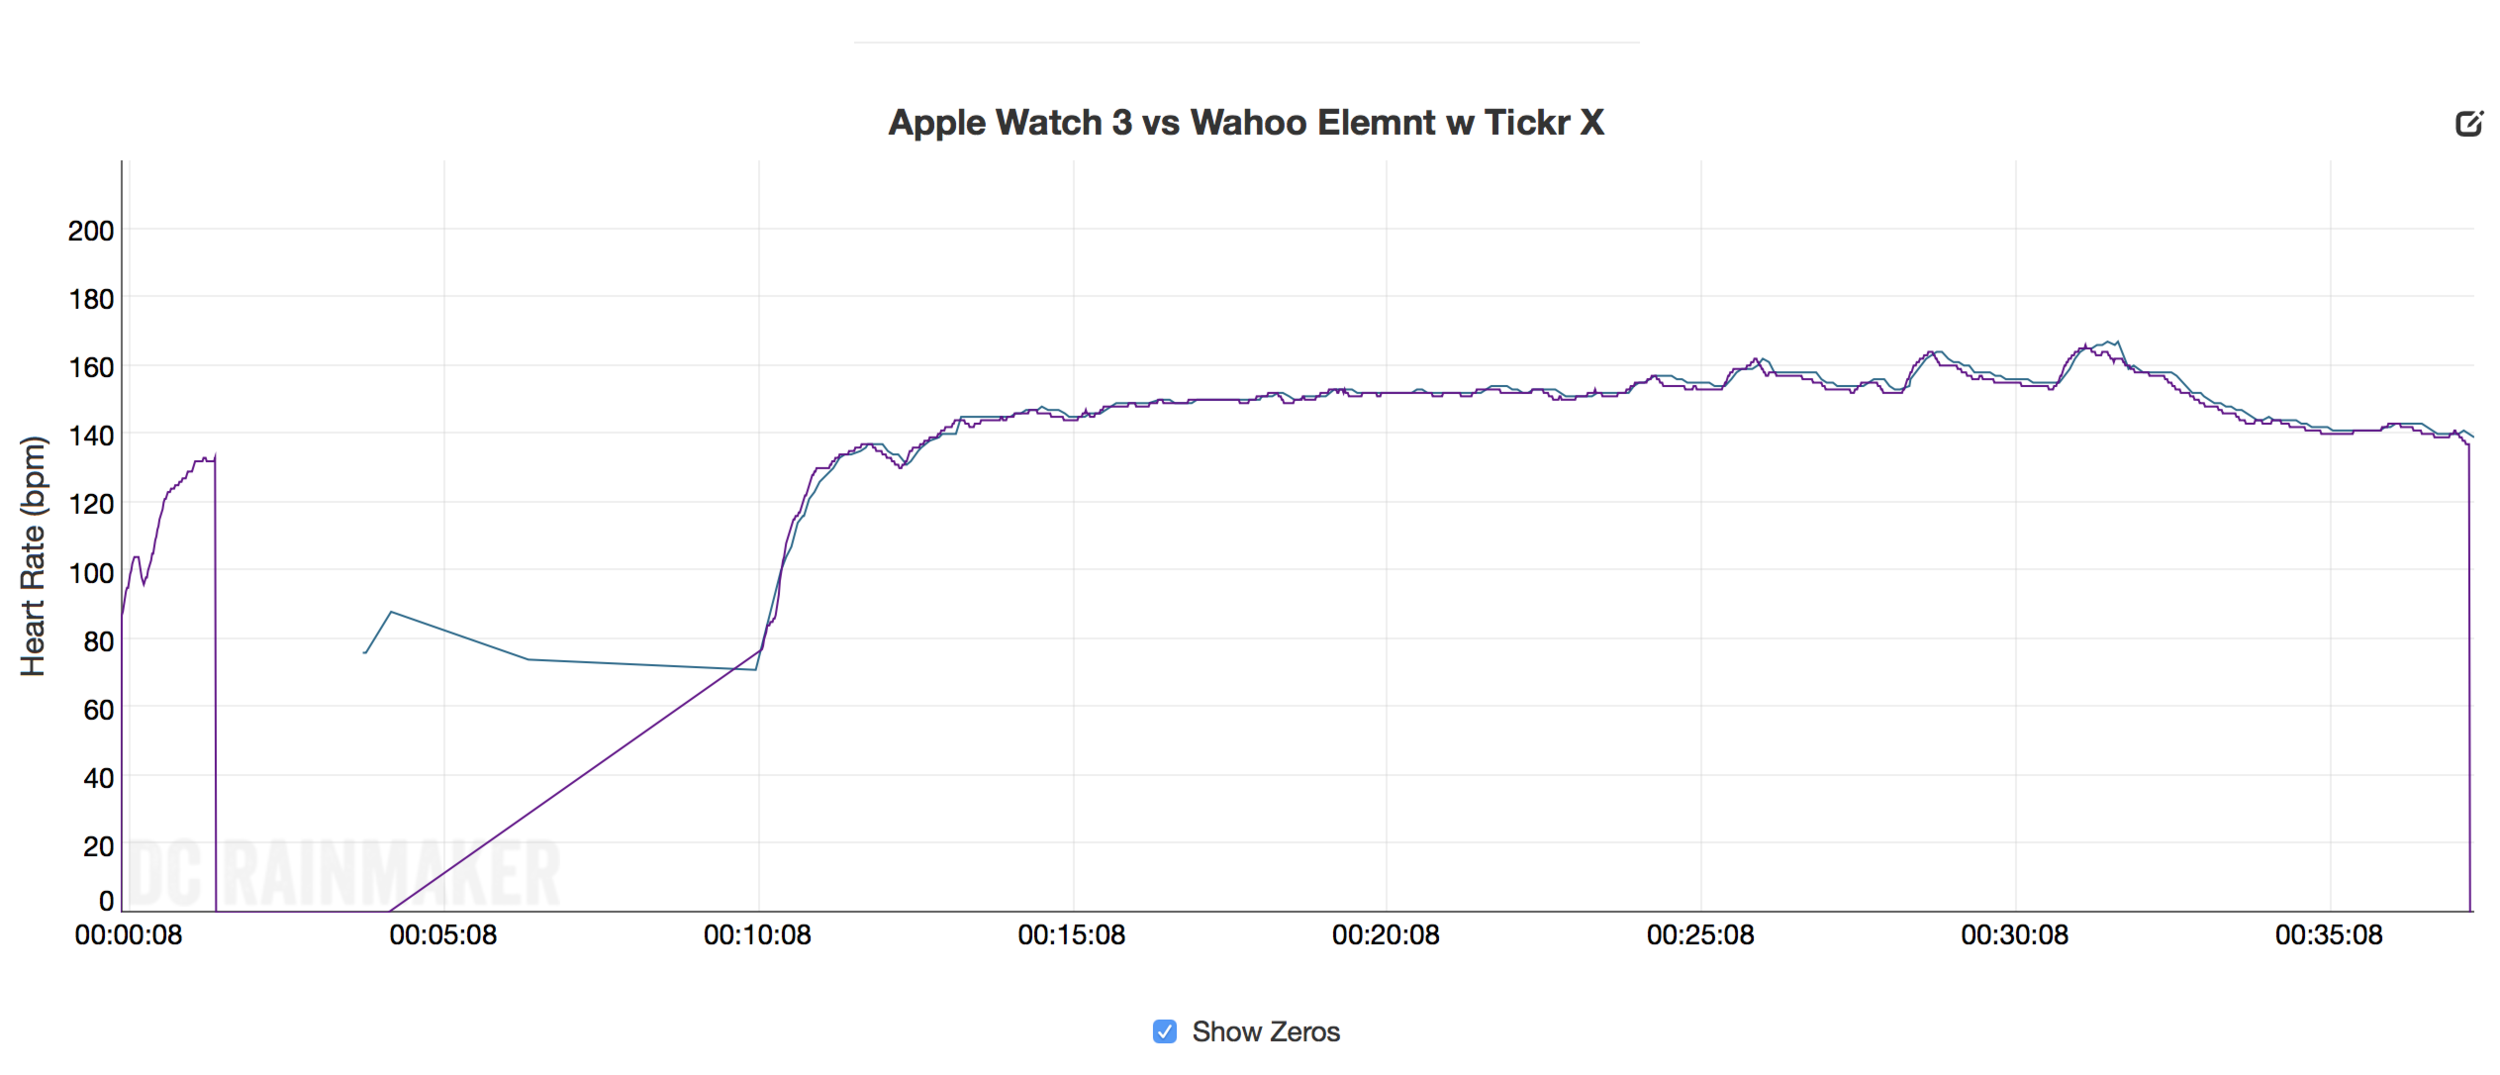 Wow - that's pretty accurate tracing between the two. Apple Watch is the blue line that starts at about 5 mins.